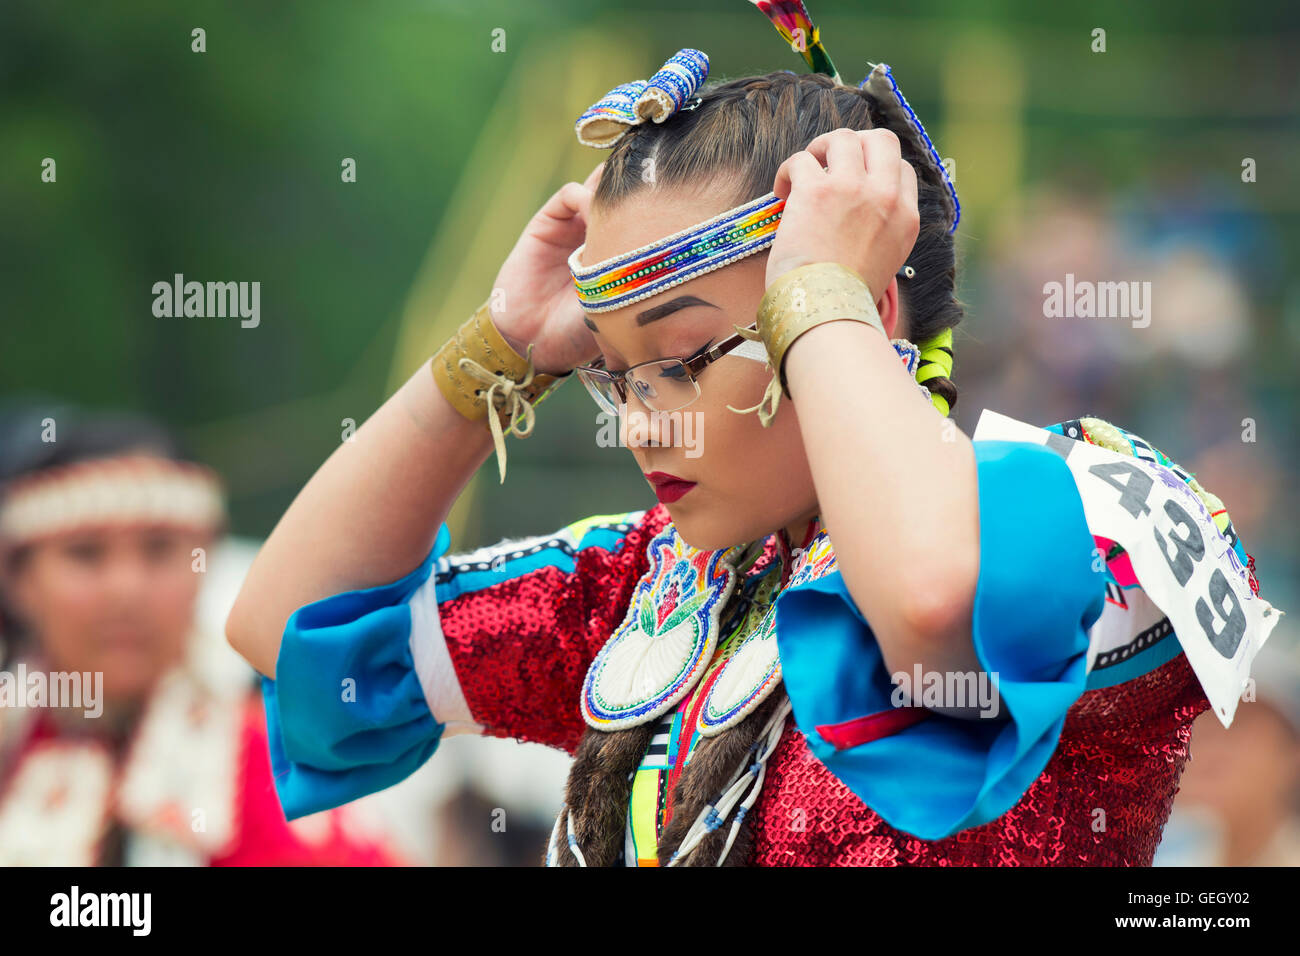 Pow Wow Native Female Dancer in Traditional Costume Six Nations of the Grand River Champion of Champions Powwow, - Stock Image